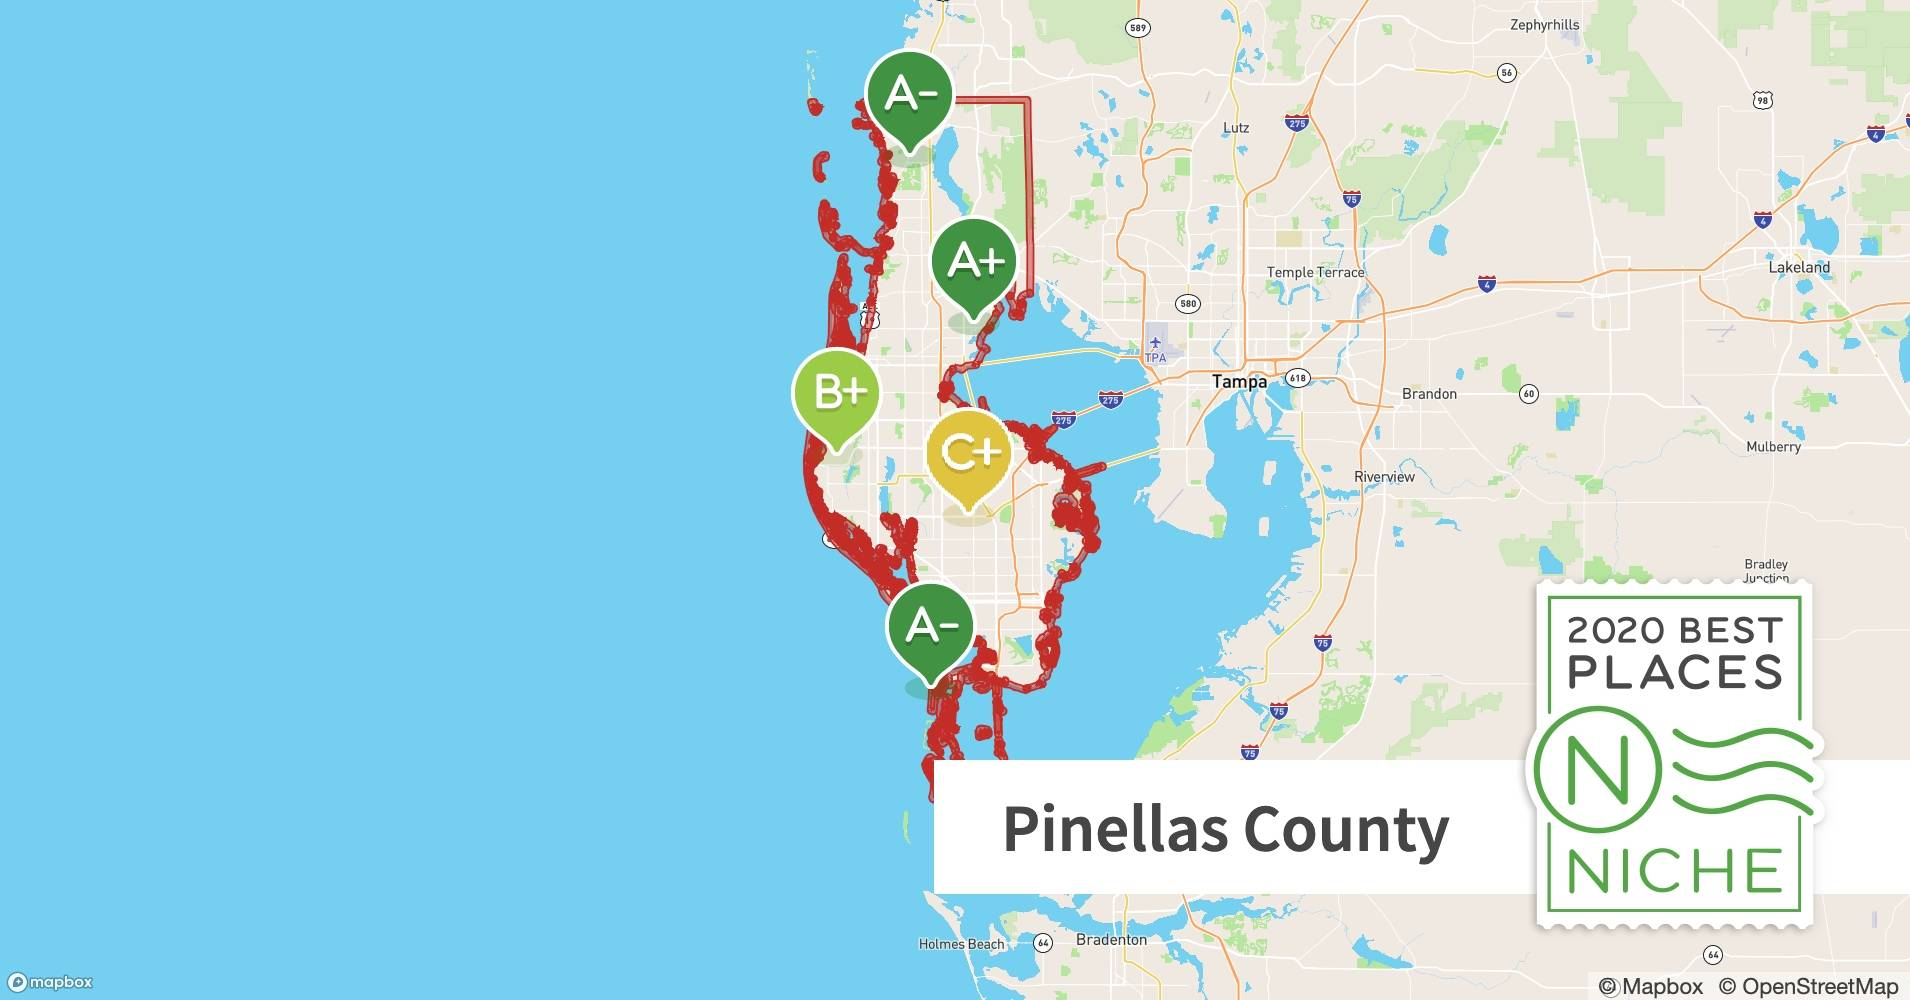 2020 Best Places To Buy A House In Pinellas County Fl Niche